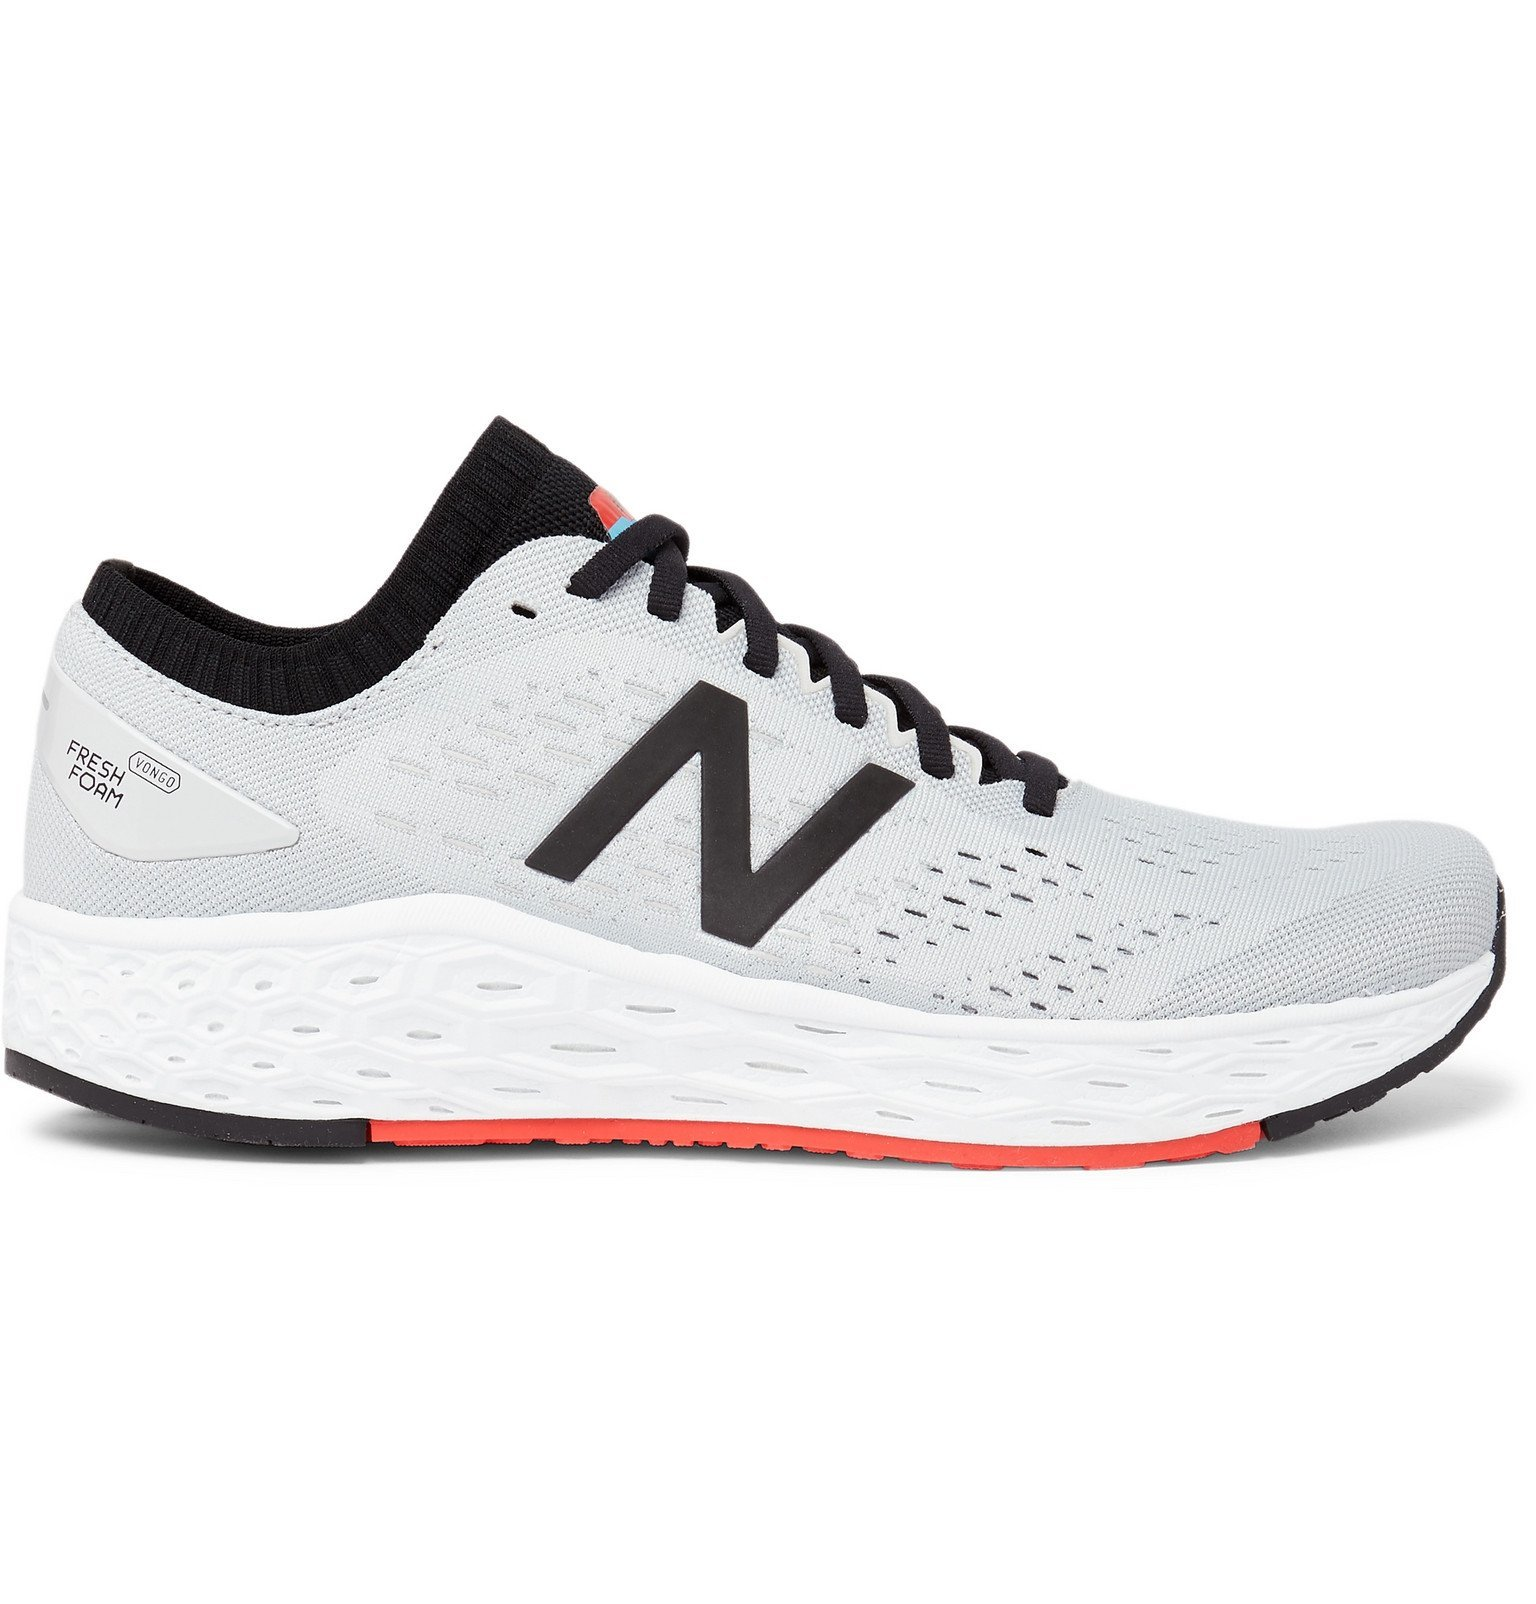 Photo: New Balance - Fresh Foam Vongo v4 Mesh Running Sneakers - Gray